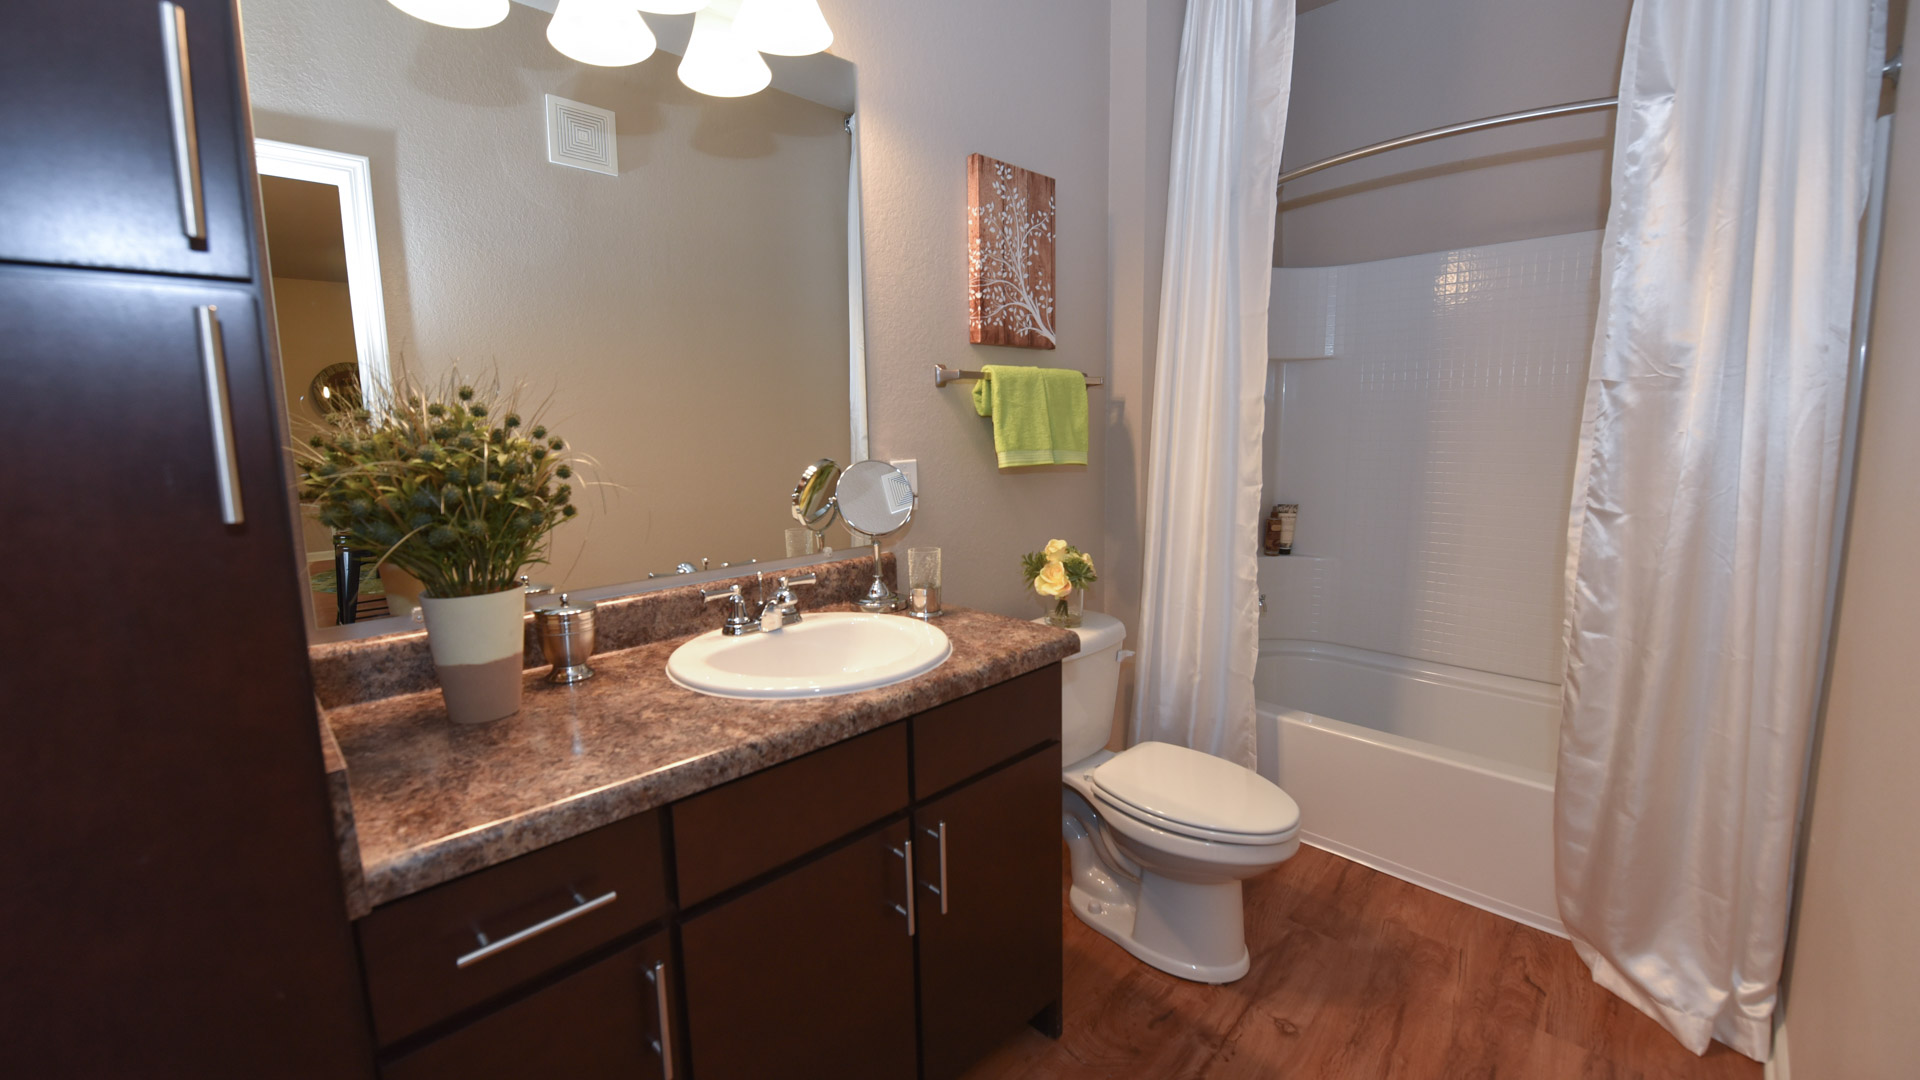 Bathroom at Springs at Orchard Road in North Aurora, IL-58